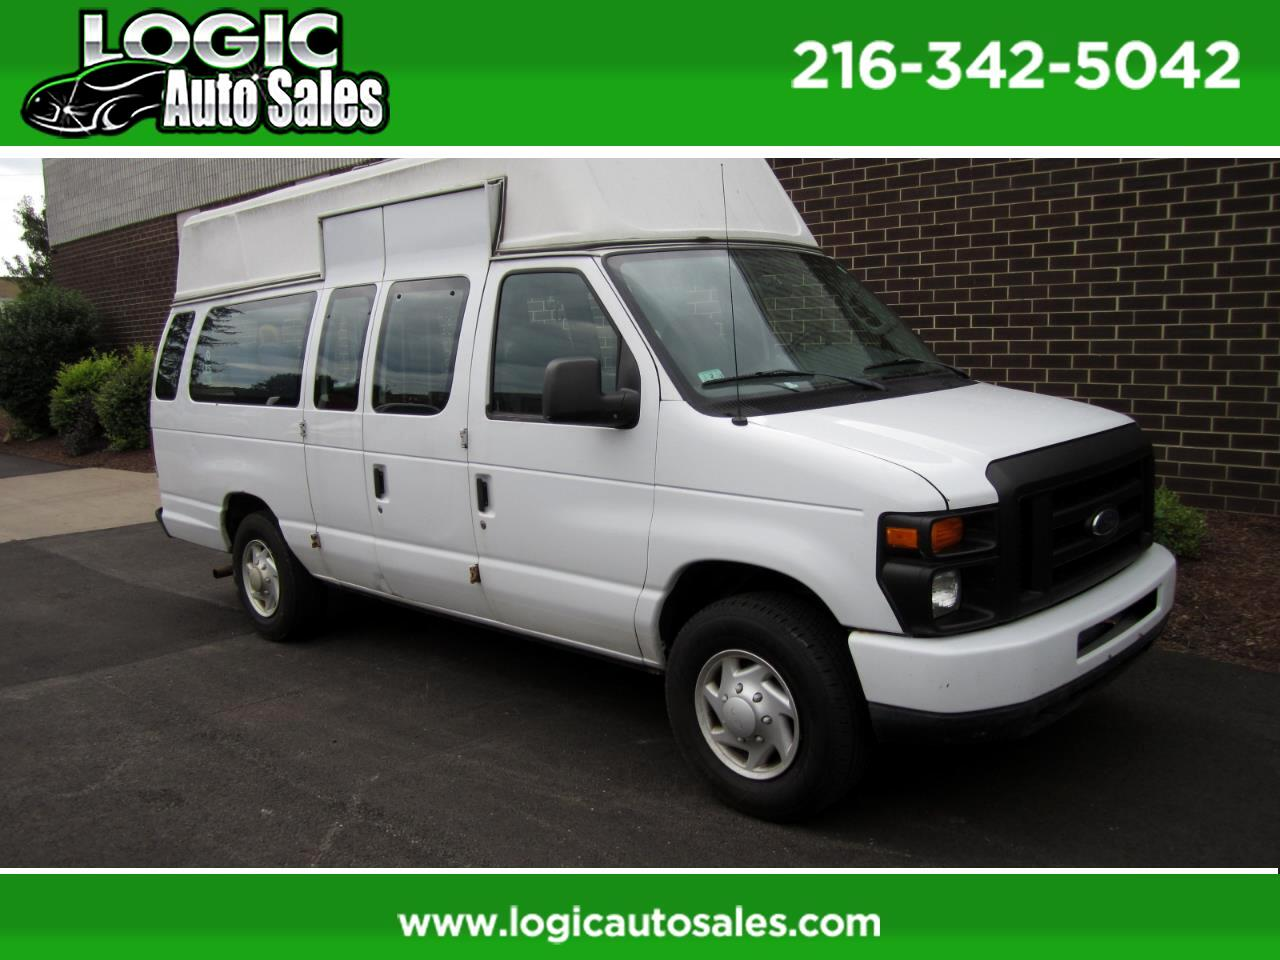 2008 Ford Econoline Cargo Van E-250 Ext Commercial